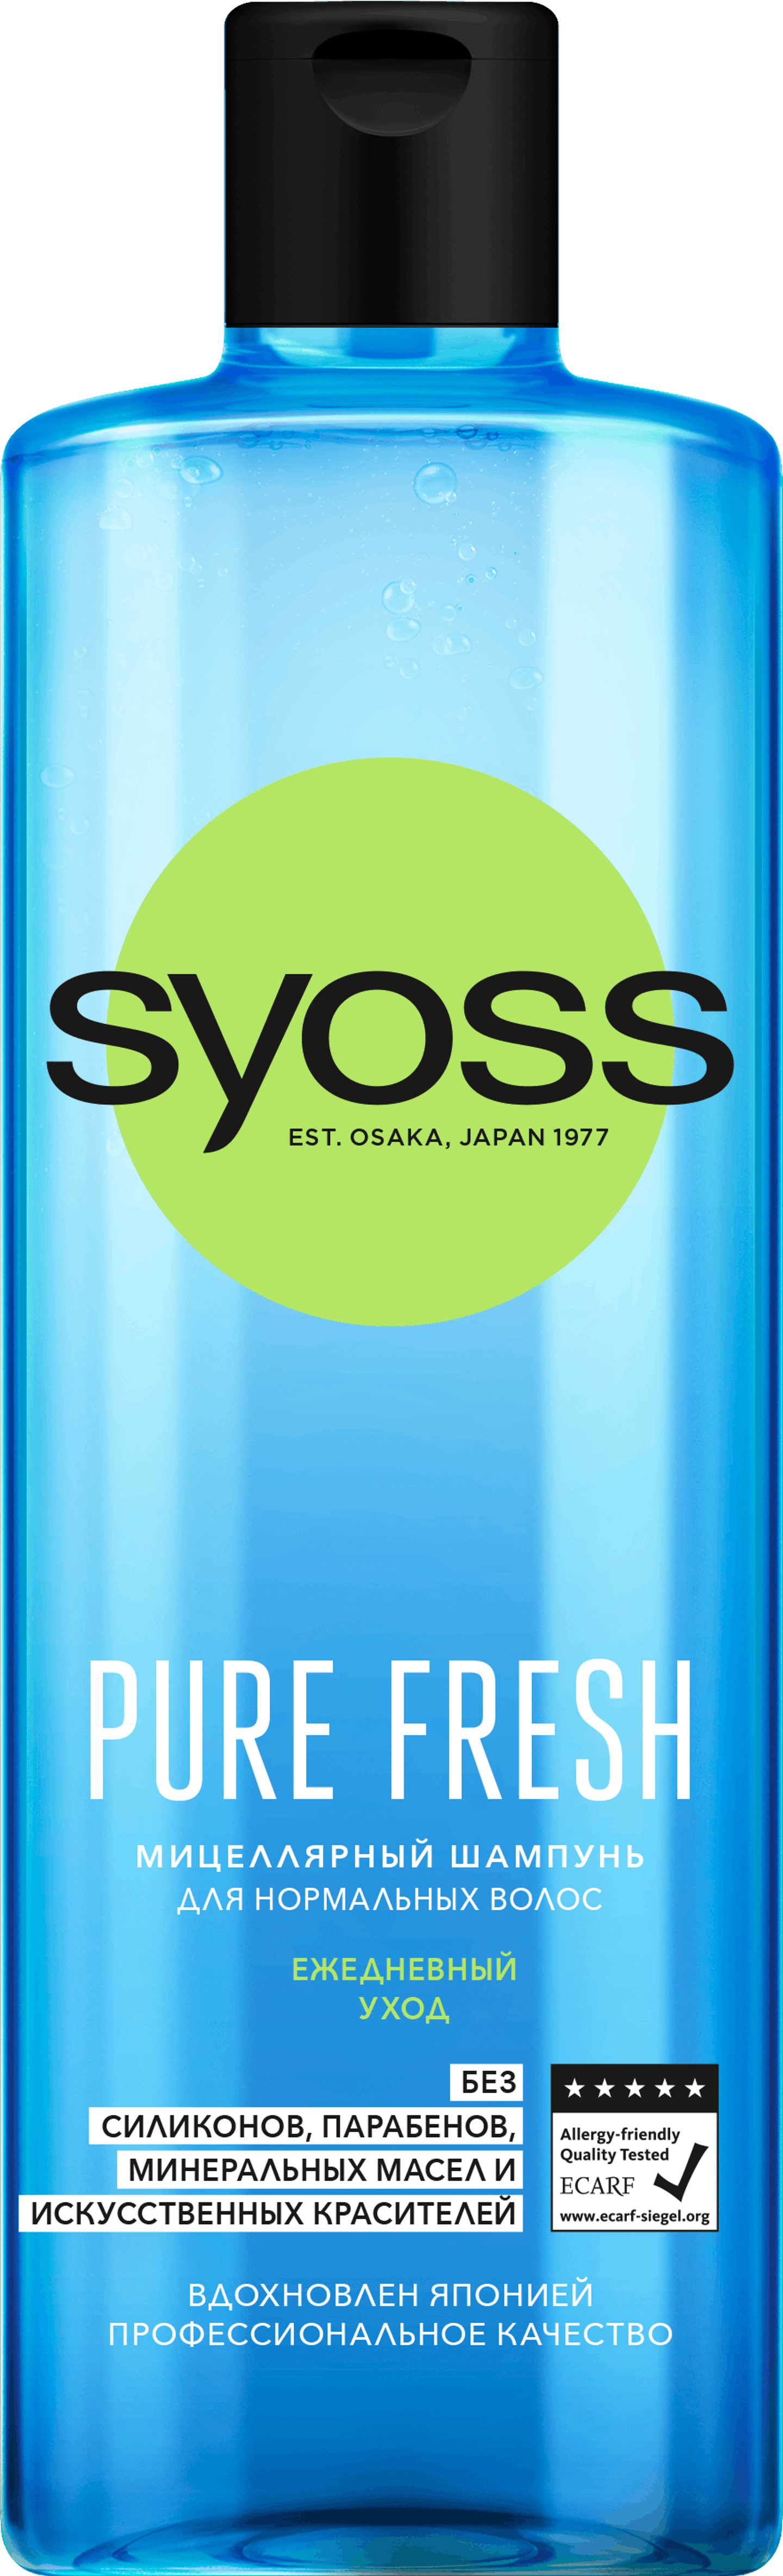 SYOSS PURE FRESH ШАМПУНЬ